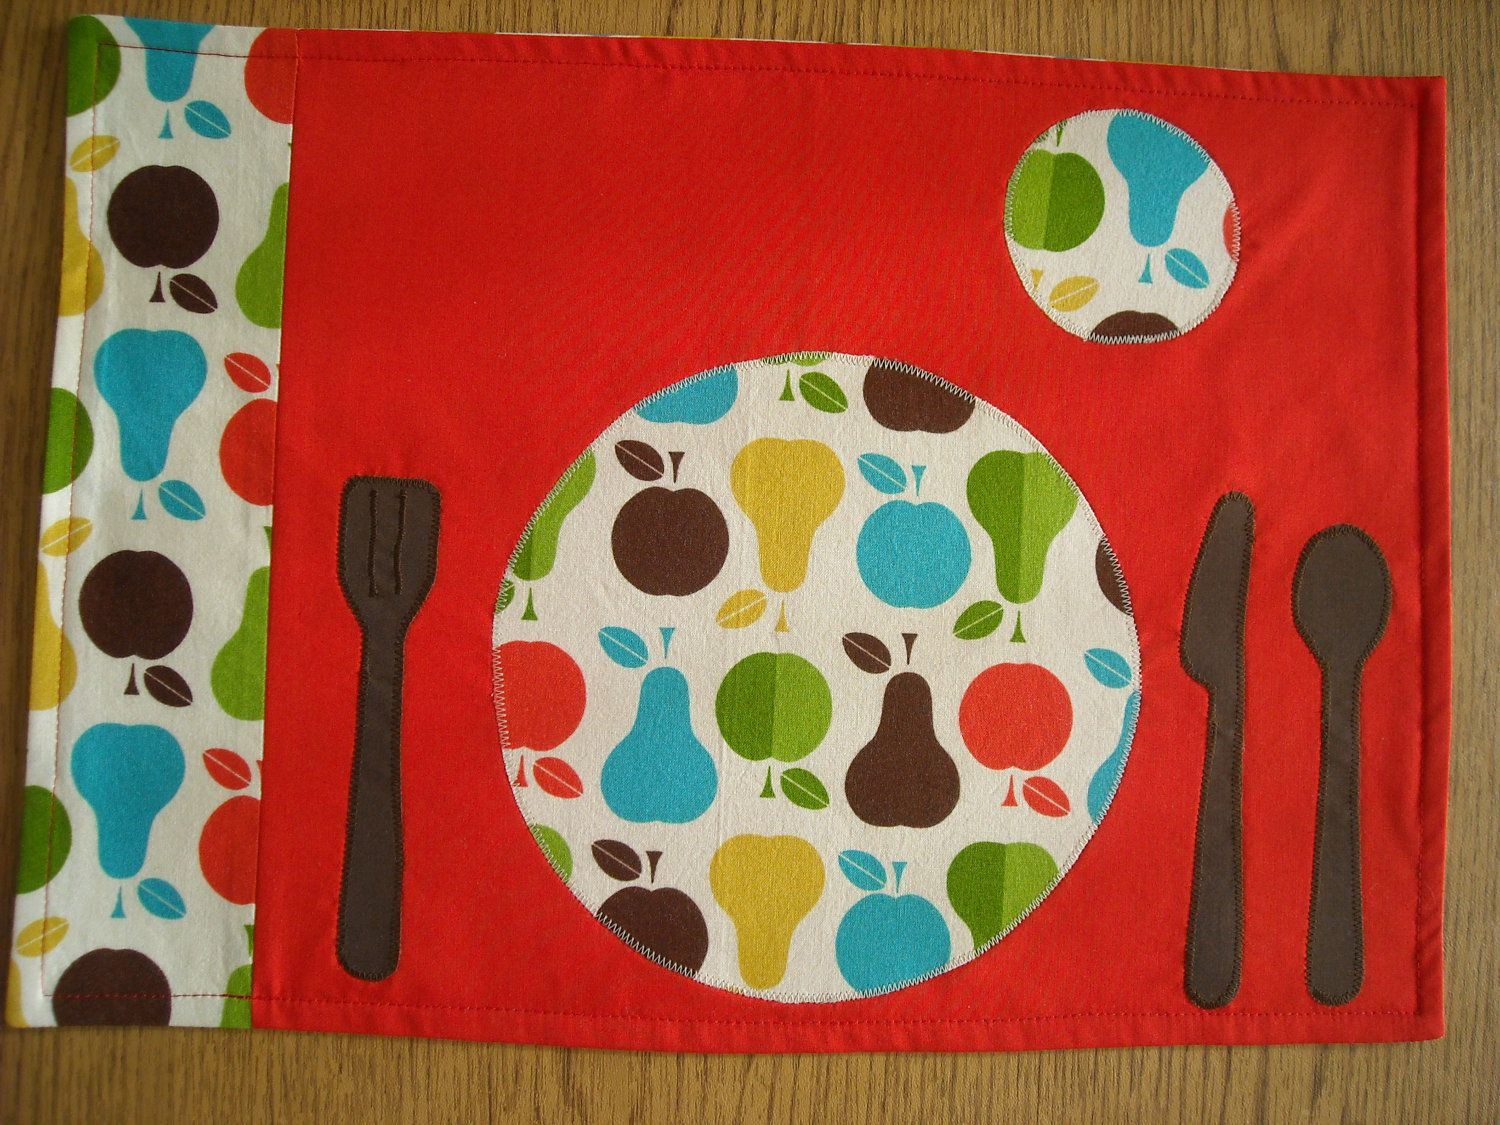 Love kids kitchen placemat with place setting of plate fork